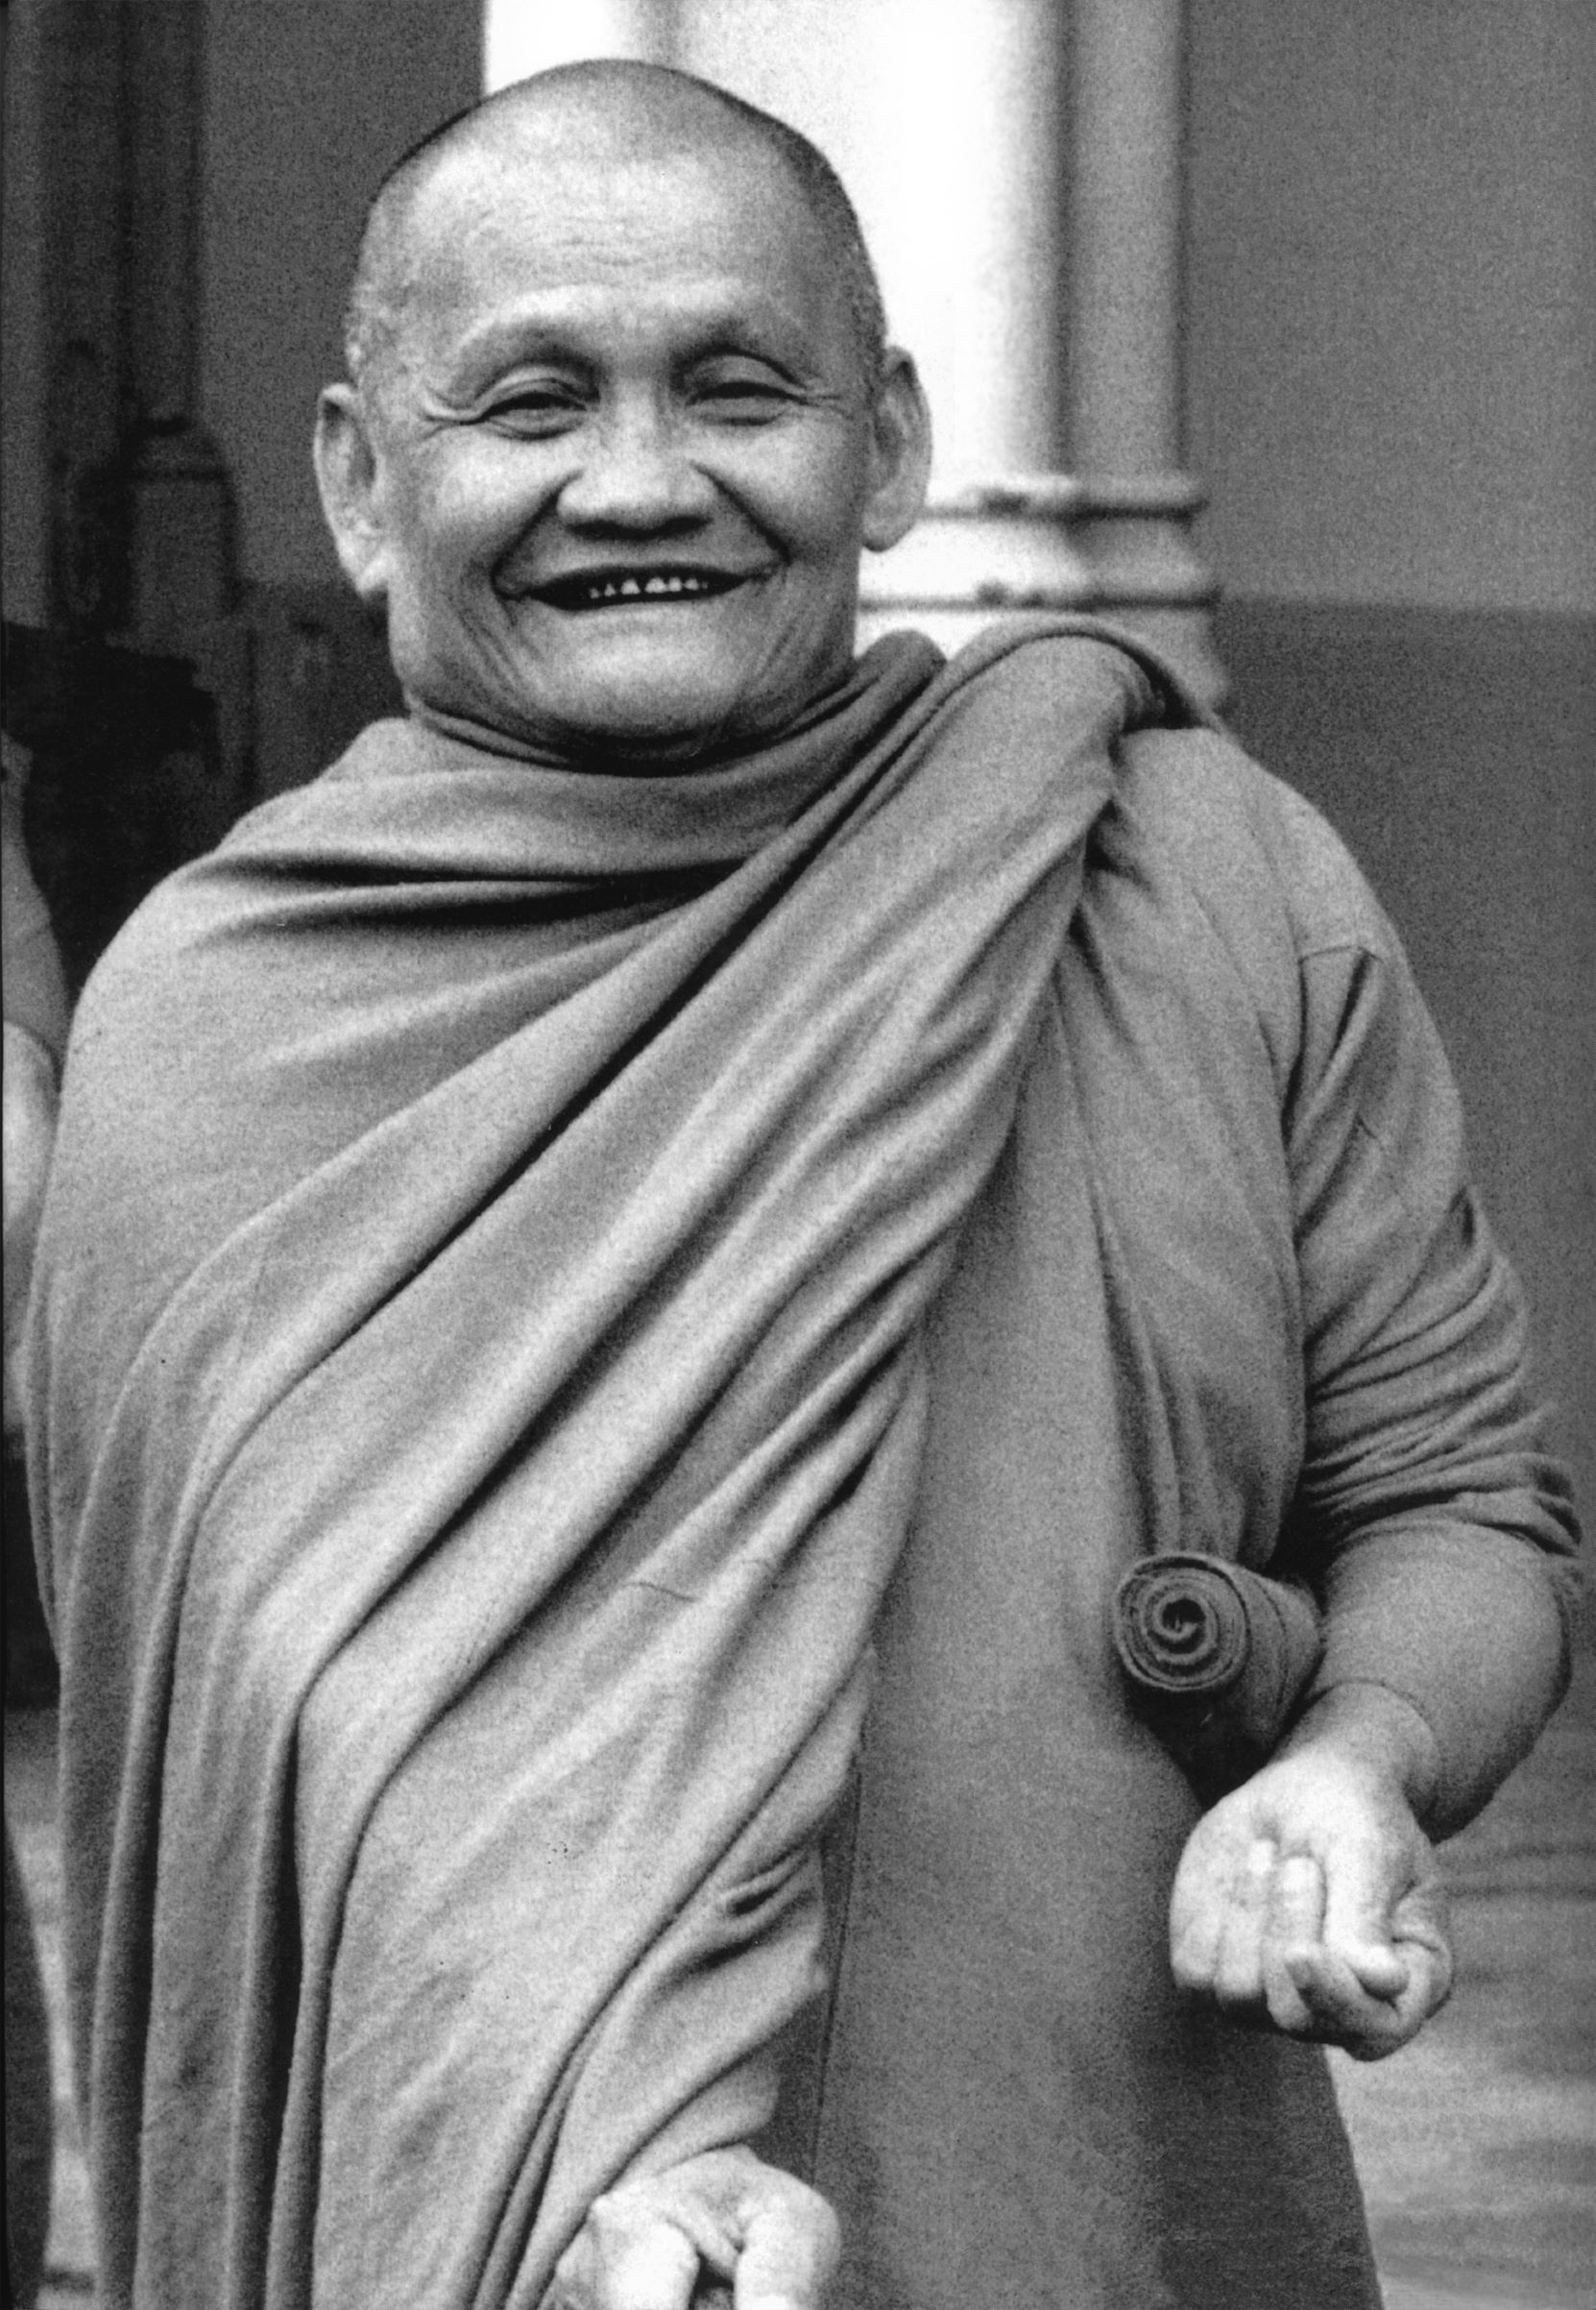 Ajahn Chah - Venerable Ajahn Chah (Phra Bodhiñāna Thera) was born into a typical farming family in a rural village in the province of Ubon Rachathani, N.E. Thailand, on June 17, 1918. At the age of twenty, on April 26, 1939 he entered a monastery for higher ordination as a bhikkhu.In 1946, he set off on mendicant pilgrimage, and studied under the guidance of Venerable Ajahn Mun, the most outstanding Thai forest meditation master of the century. Ajahn Chah practiced in the style of an ascetic monk in the austere Forest Tradition for the next seven years.After many years of travel and practice, he was invited to settle in a thick forest grove near the village of his birth. Ajahn Chah's simple yet profound style of teaching has a special appeal to Westerners, and many have come to study and practice with him. In 1966 the first westerner came to stay at Wat Nong Pah Pong, Venerable Sumedho Bhikkhu. From that time on, the number of foreign people who came to Ajahn Chah began to steadily increase.In 1977, Ajahn Chah and Ajahn Sumedho were invited to visit Britain by the English Sangha Trust, a charity with the aim of establishing a locally-resident Buddhist Sangha. Seeing the serious interest there, Ajahn Chah left Ajahn Sumedho (with two of his other Western disciples who were then visiting Europe) in London at the Hampstead Vihara. He returned to Britain in 1979, at which time the monks were leaving London to begin Chithurst Buddhist Monastery in Sussex. He then went on to America and Canada to visit and teach.Although Ajahn Chah passed away in 1992, the training which he established is still carried on at Wat Nong Pah Pong and its branch monasteries, of which there are currently more than two hundred in Thailand.Wisdom is a way of living and being, and Ajahn Chah has endeavored to preserve the simple monastic life-style in order that people may study and practice the Dhamma in the present day.